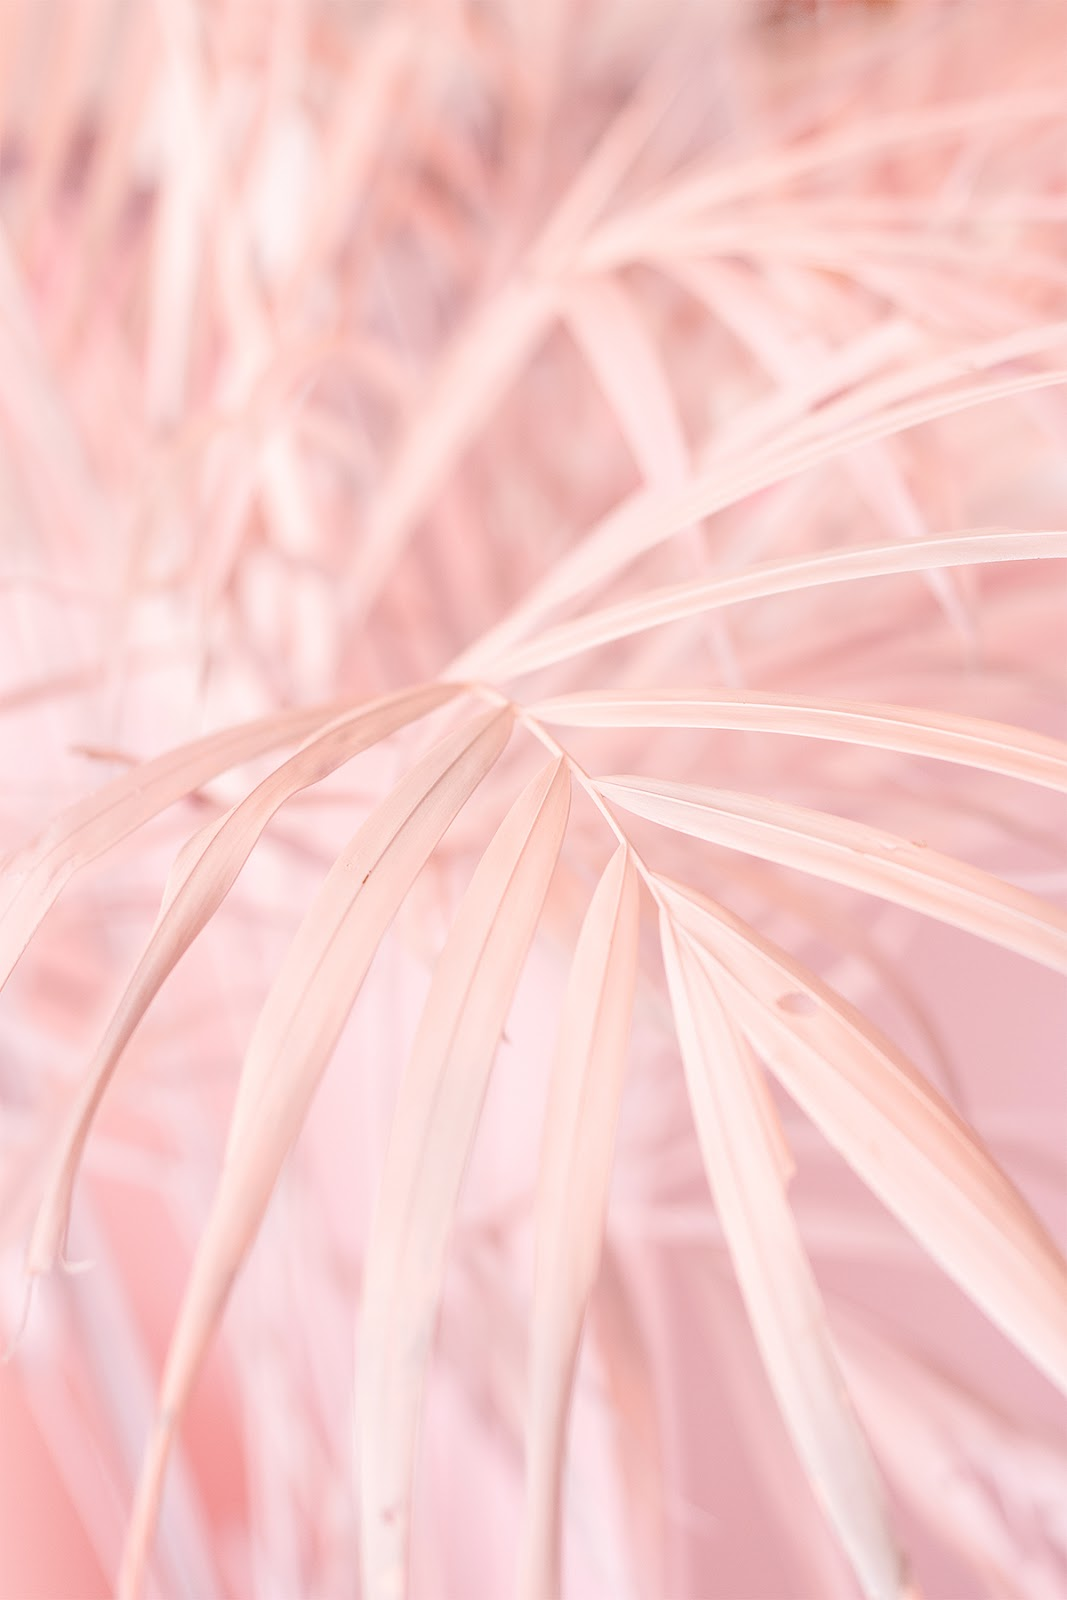 museum of ice cream party palmeira folha rosa blog do math pink palm leaves